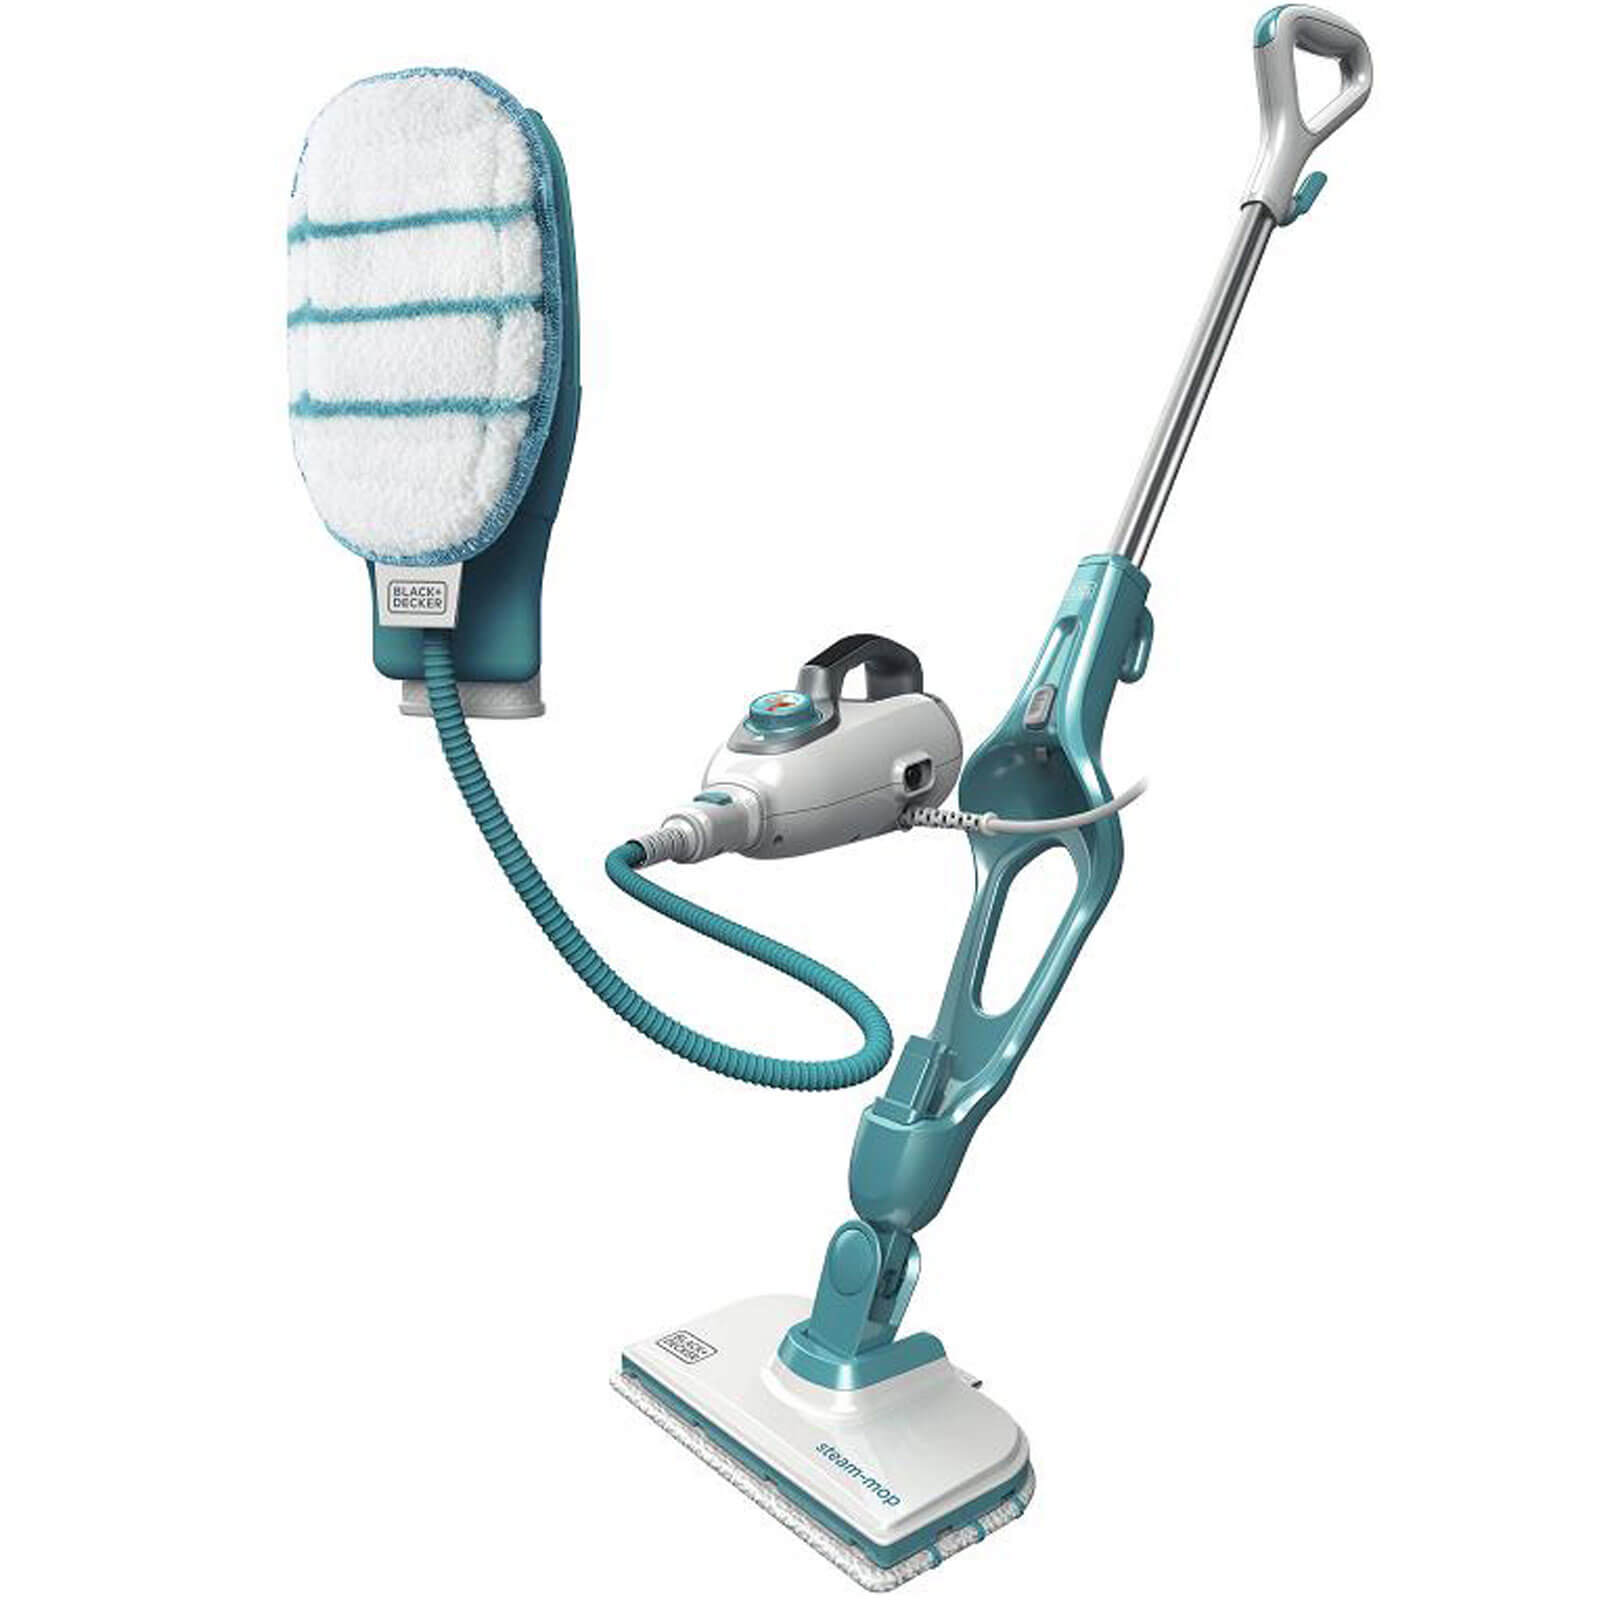 Black and Decker FSMH1351SM 9 in 1 Steam Floor Mop with SteaMitt 240v